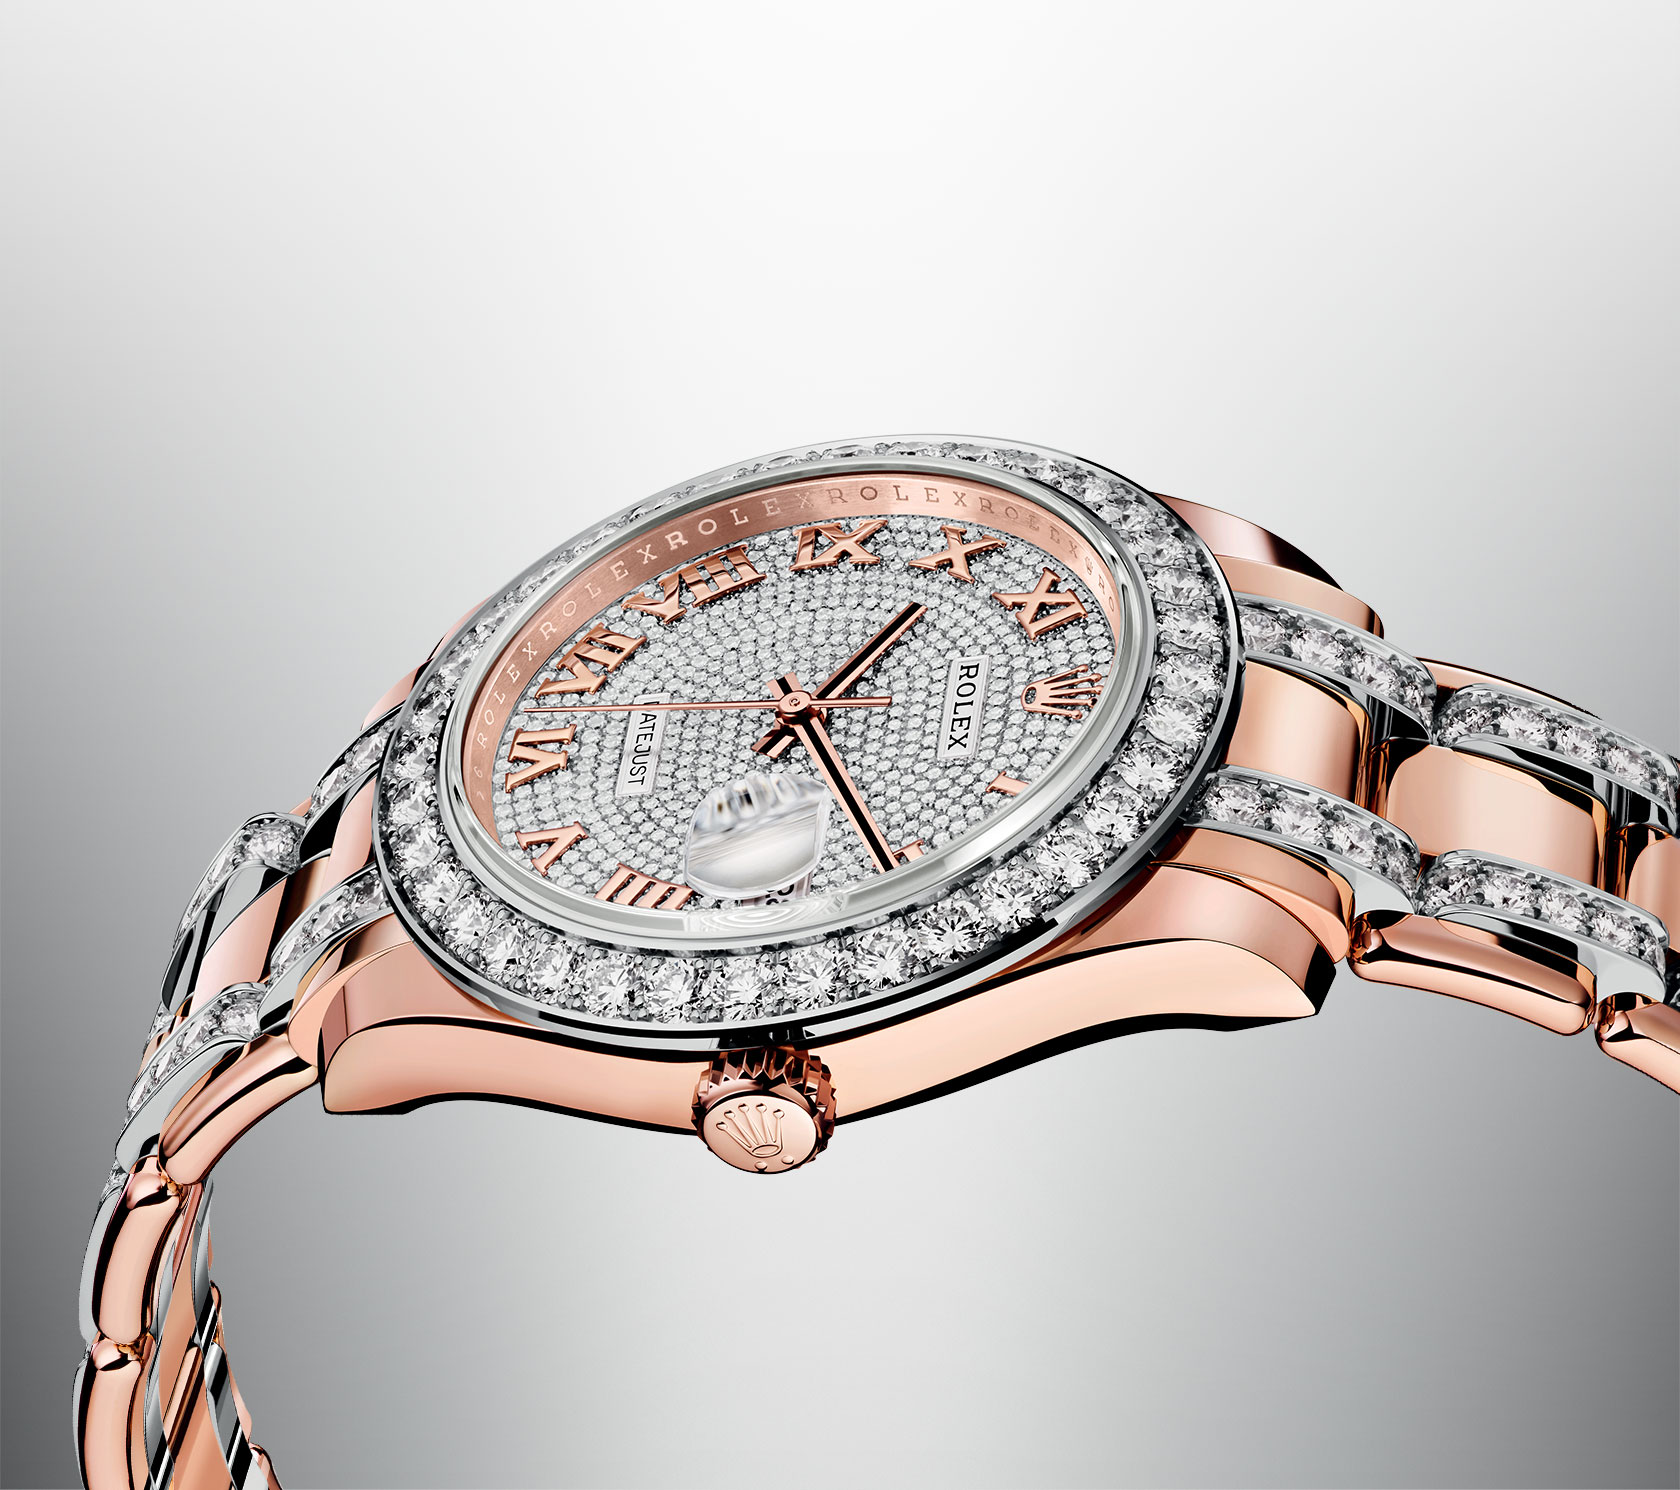 new-rolex-pearlmaster-39-watch